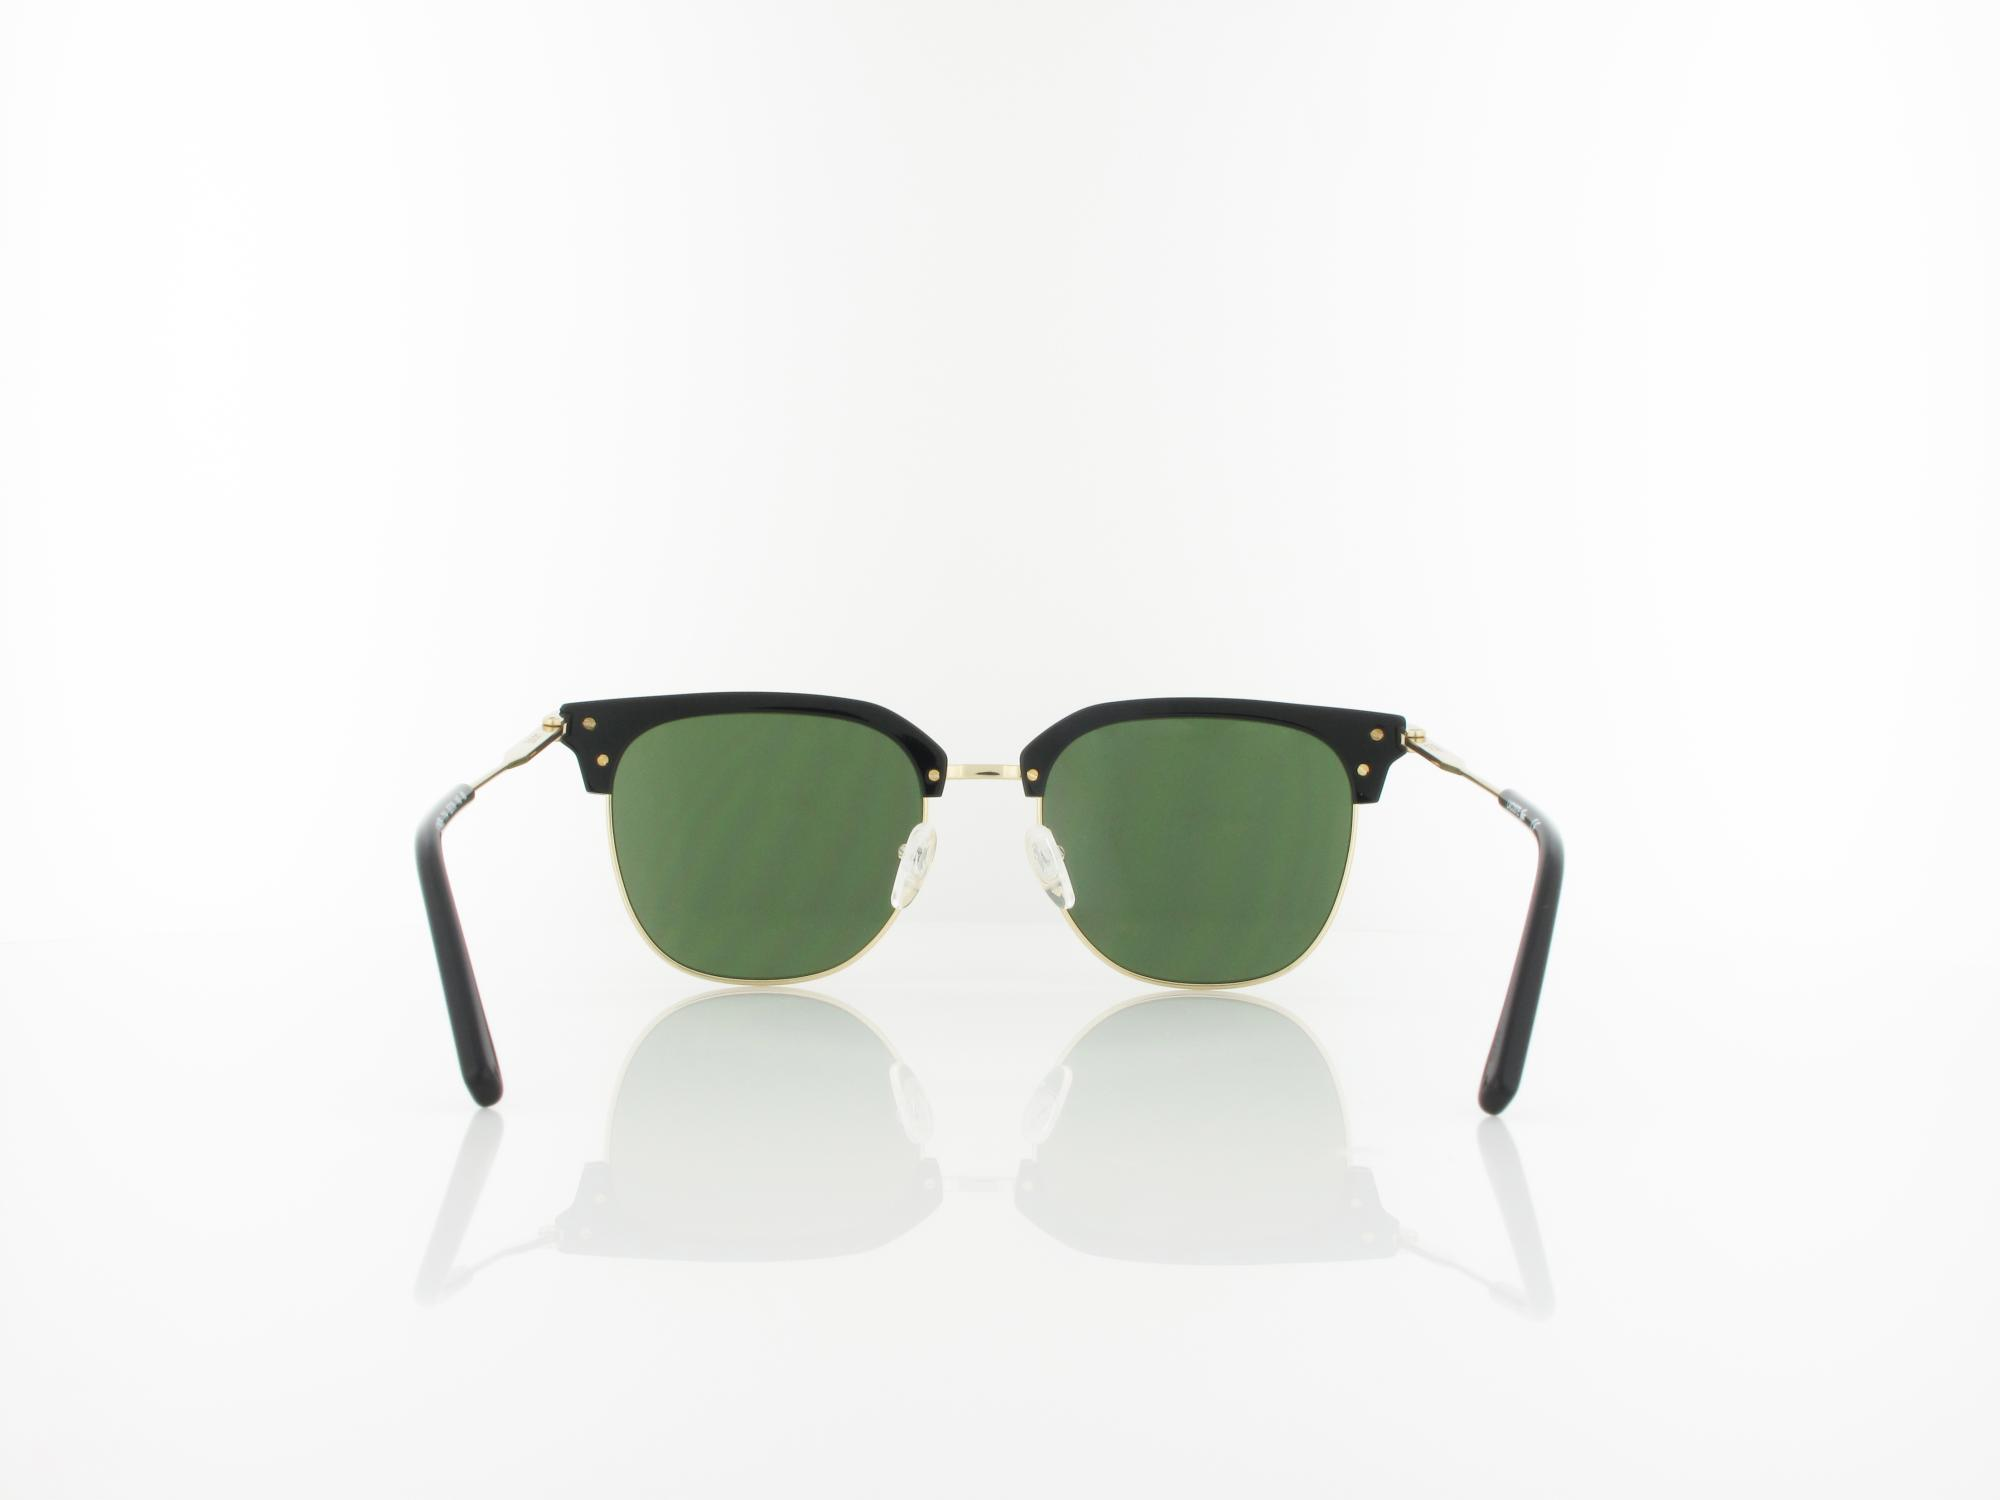 Lacoste | L240S 714 52 | gold / solid green